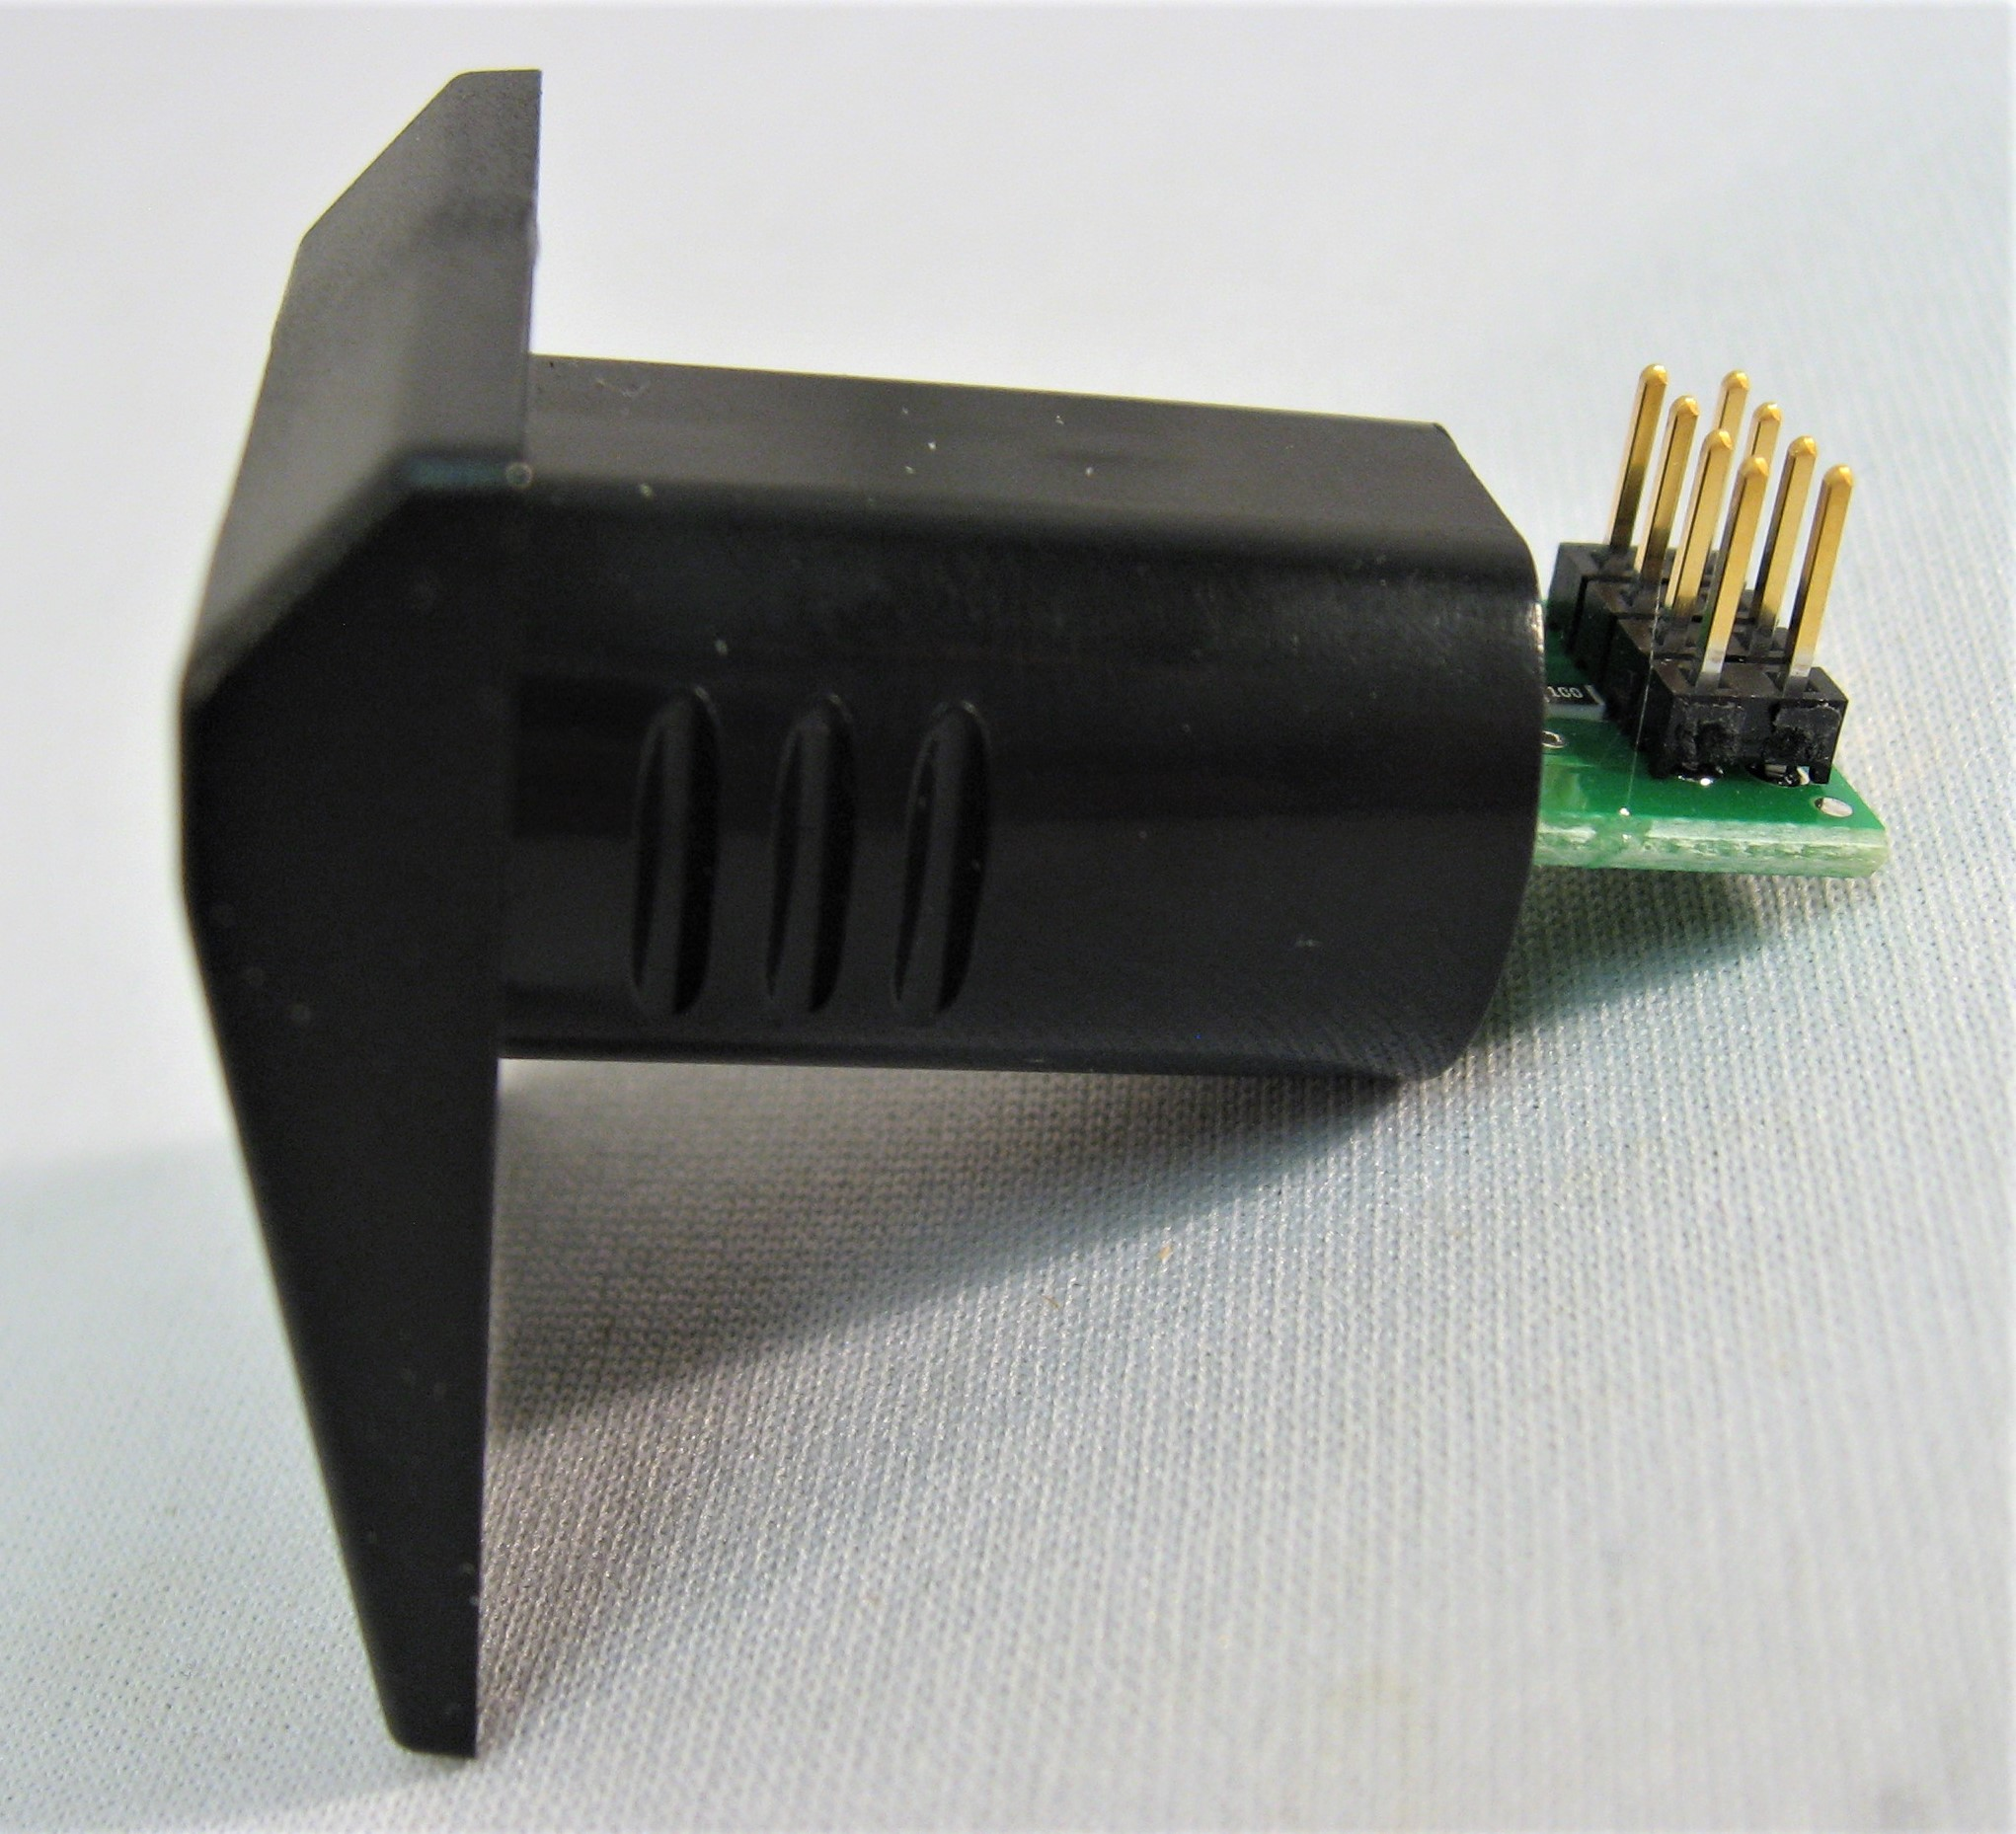 Keyport - Ribbon Cable Mount